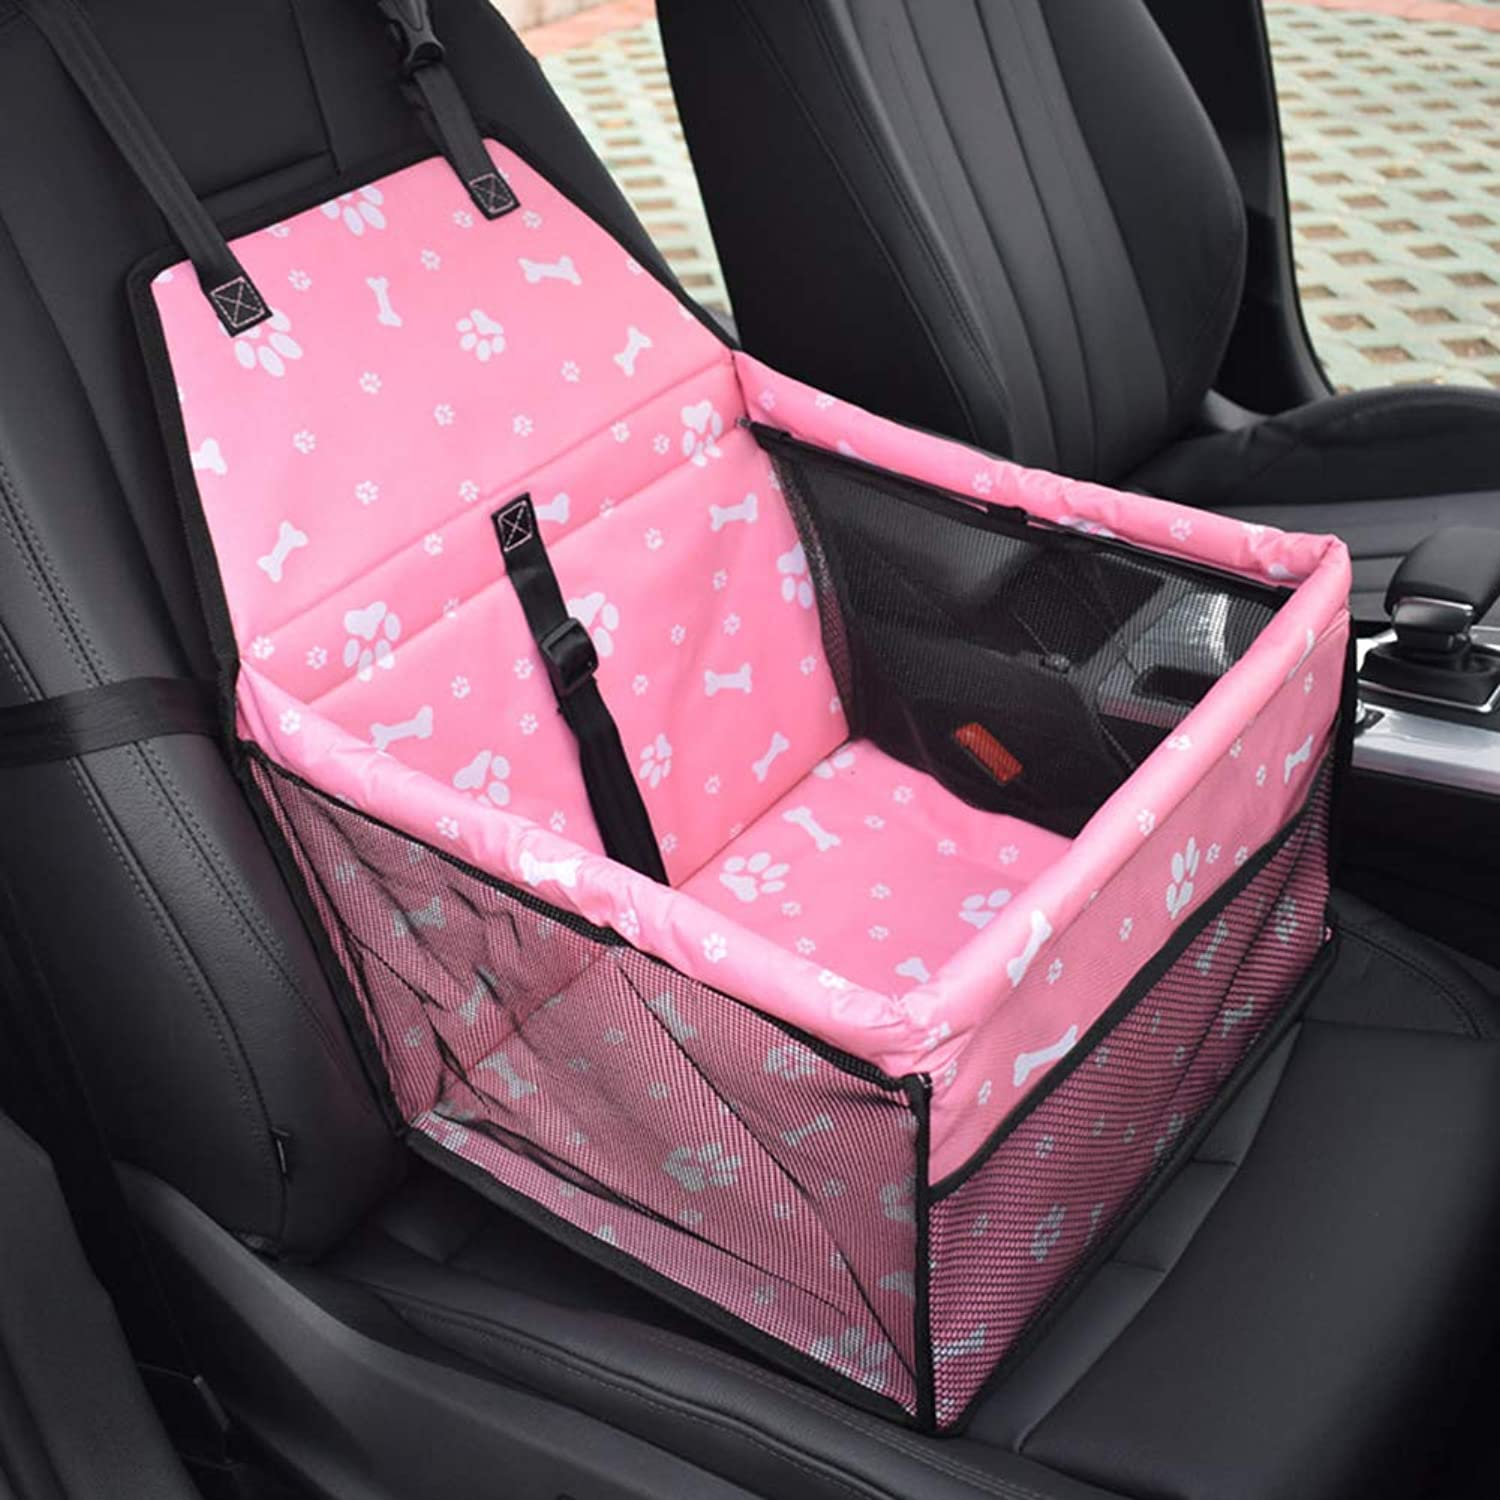 NUTK Pet Car Booster Seat for Dog Cat, Waterproof Portable Folding Travel Safety Seat Box with Safety Leash and Zipper Storage Pocket for 11 Pound Pet.Pink